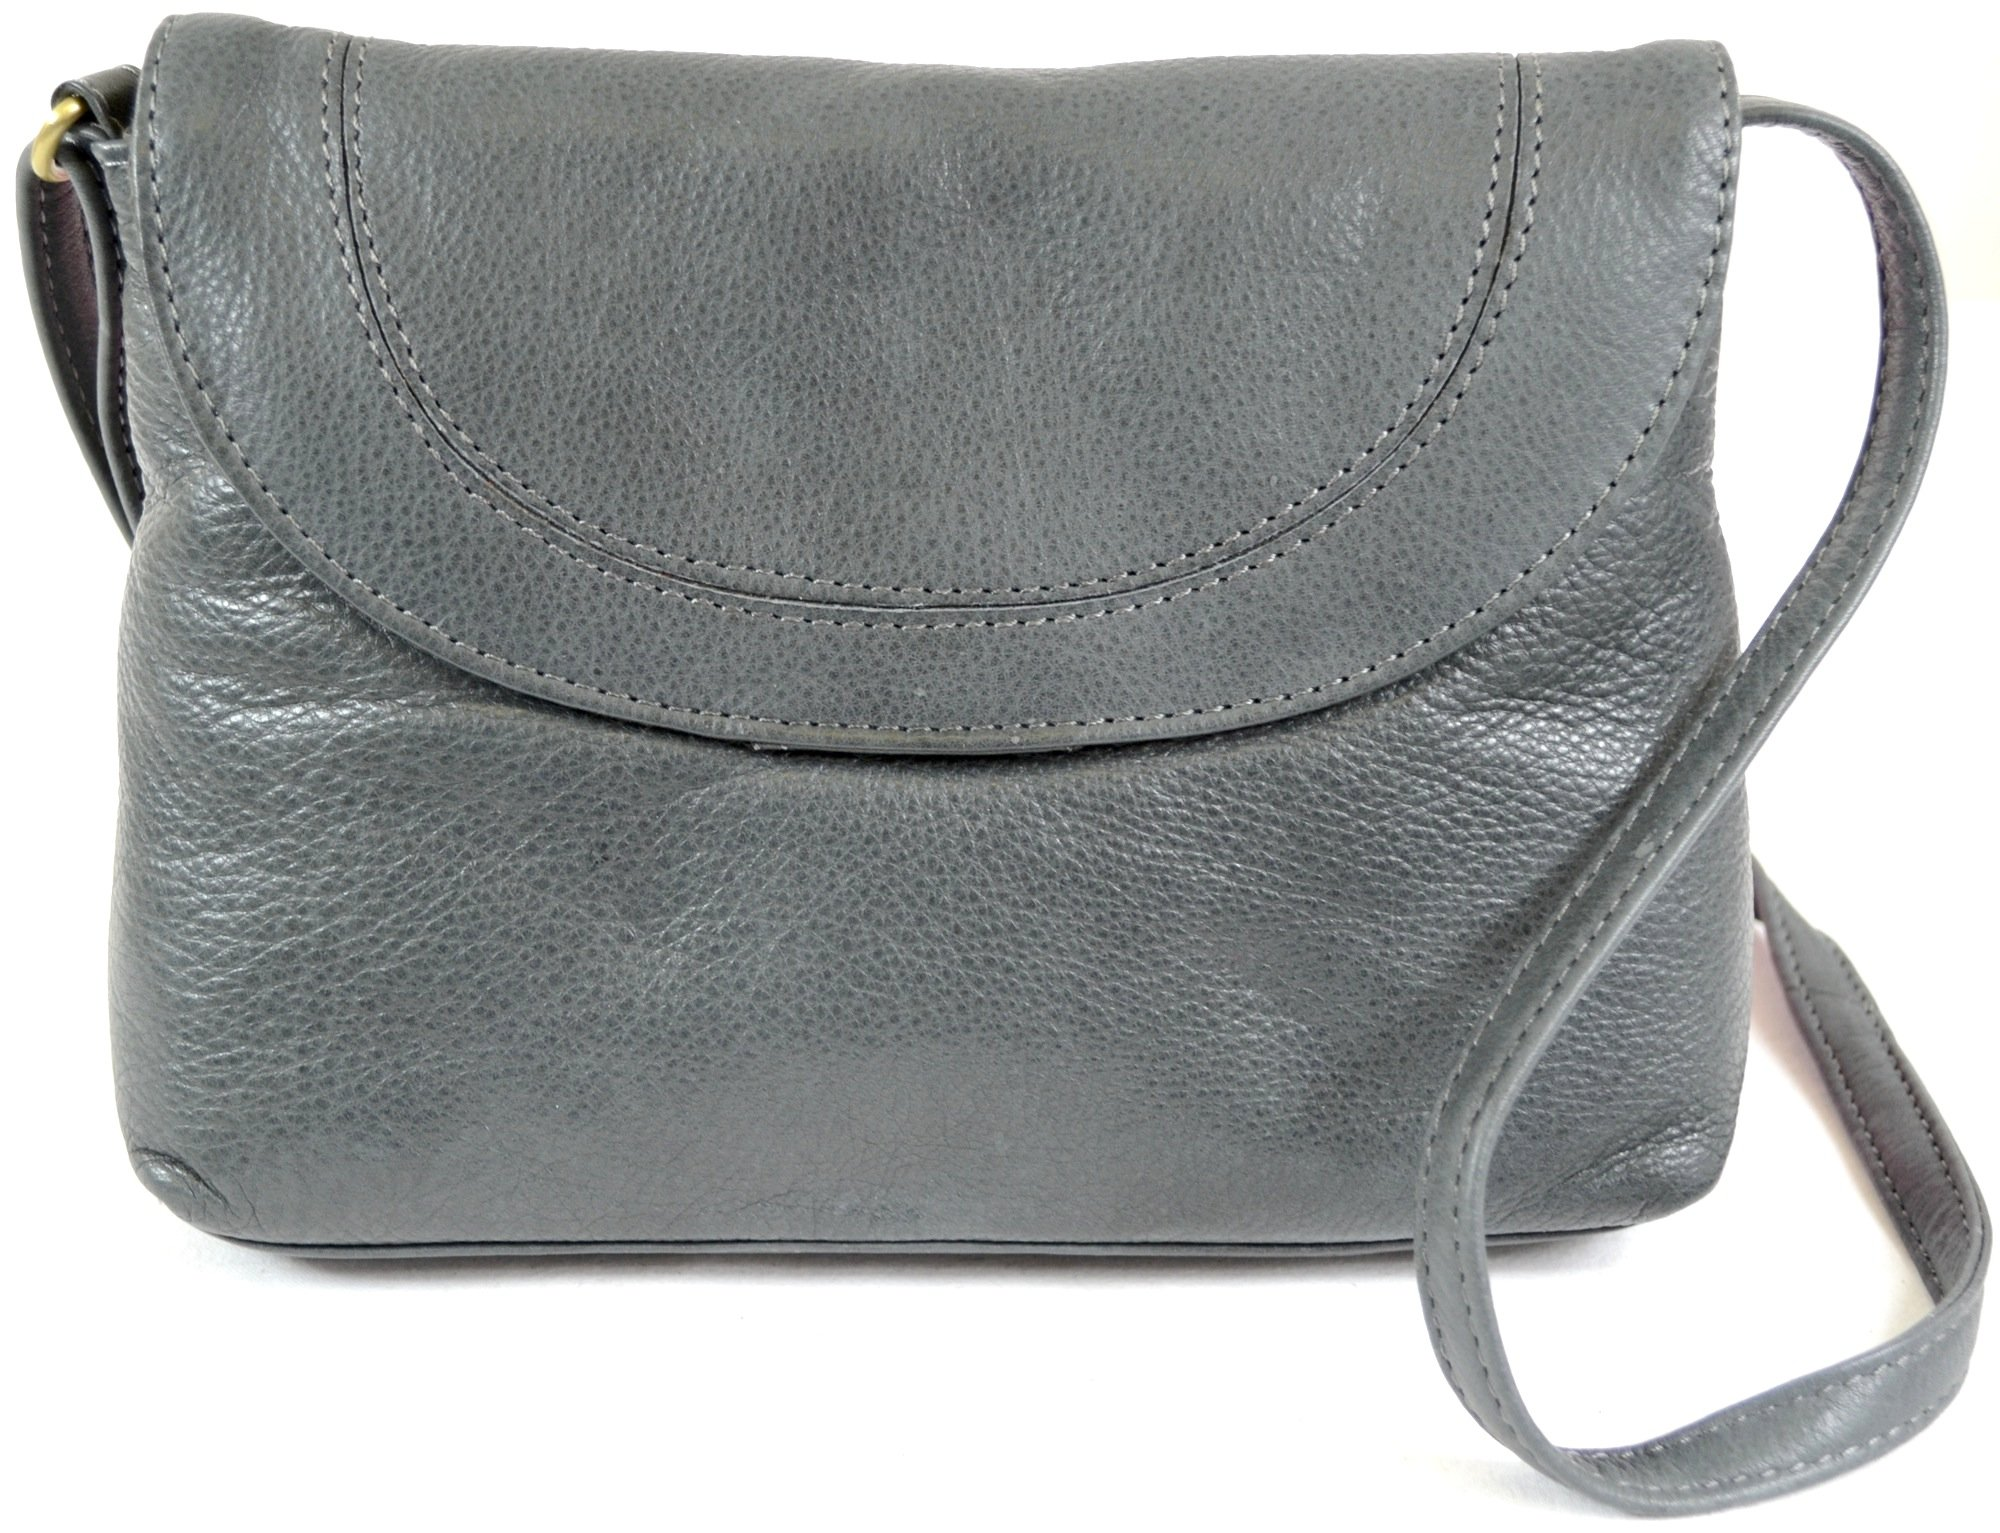 Ladies Soft Premium Leather Shoulder/Cross Body Bag (Charcoal) by SNUGRUGS (Image #1)